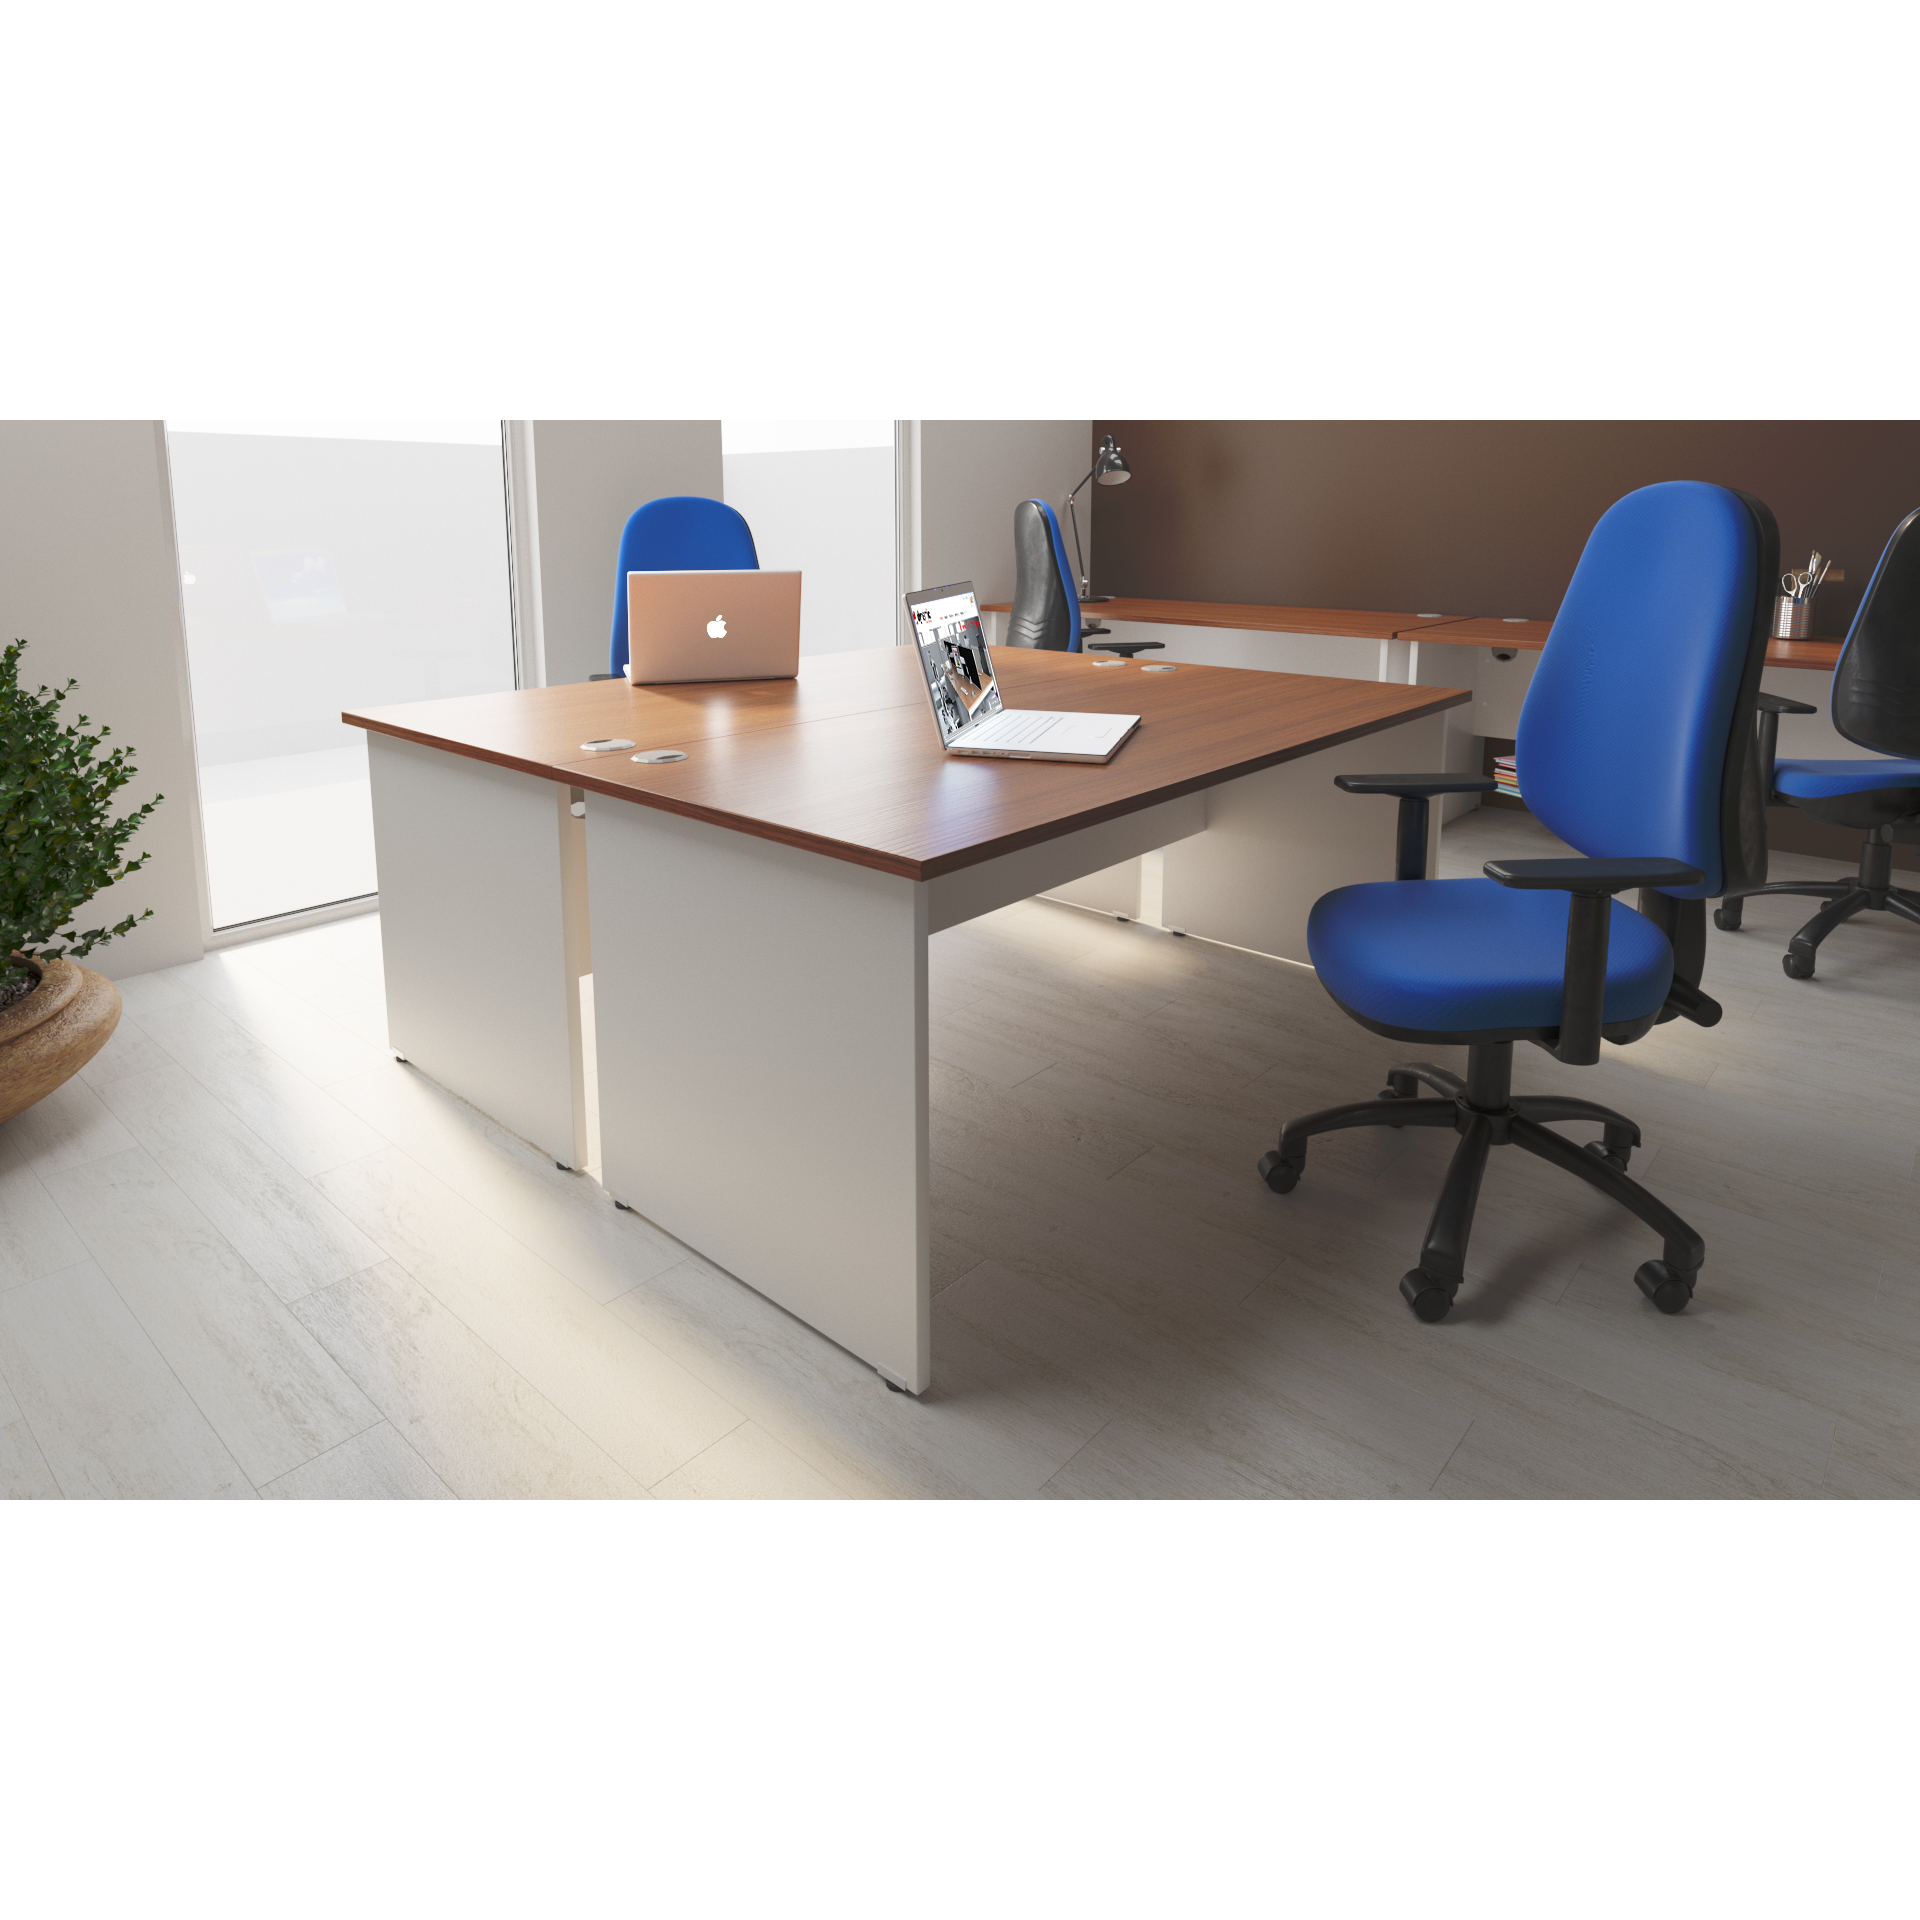 Trexus Desk Rectangle Panel End 1600x800mm Walnut Top White Panels Ref TT000013